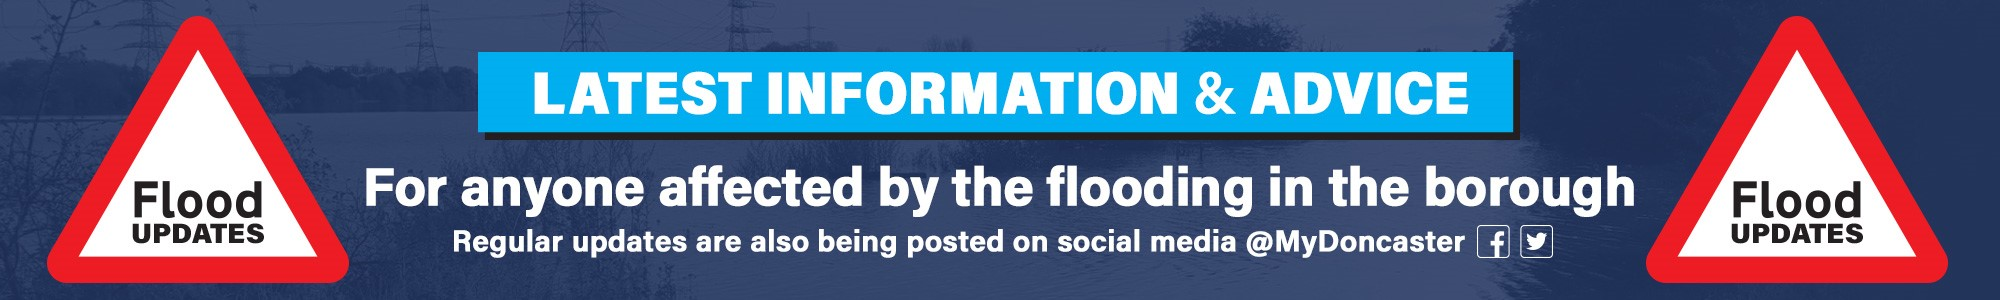 Flood updates - latest information for people affected by the flooding in the borough